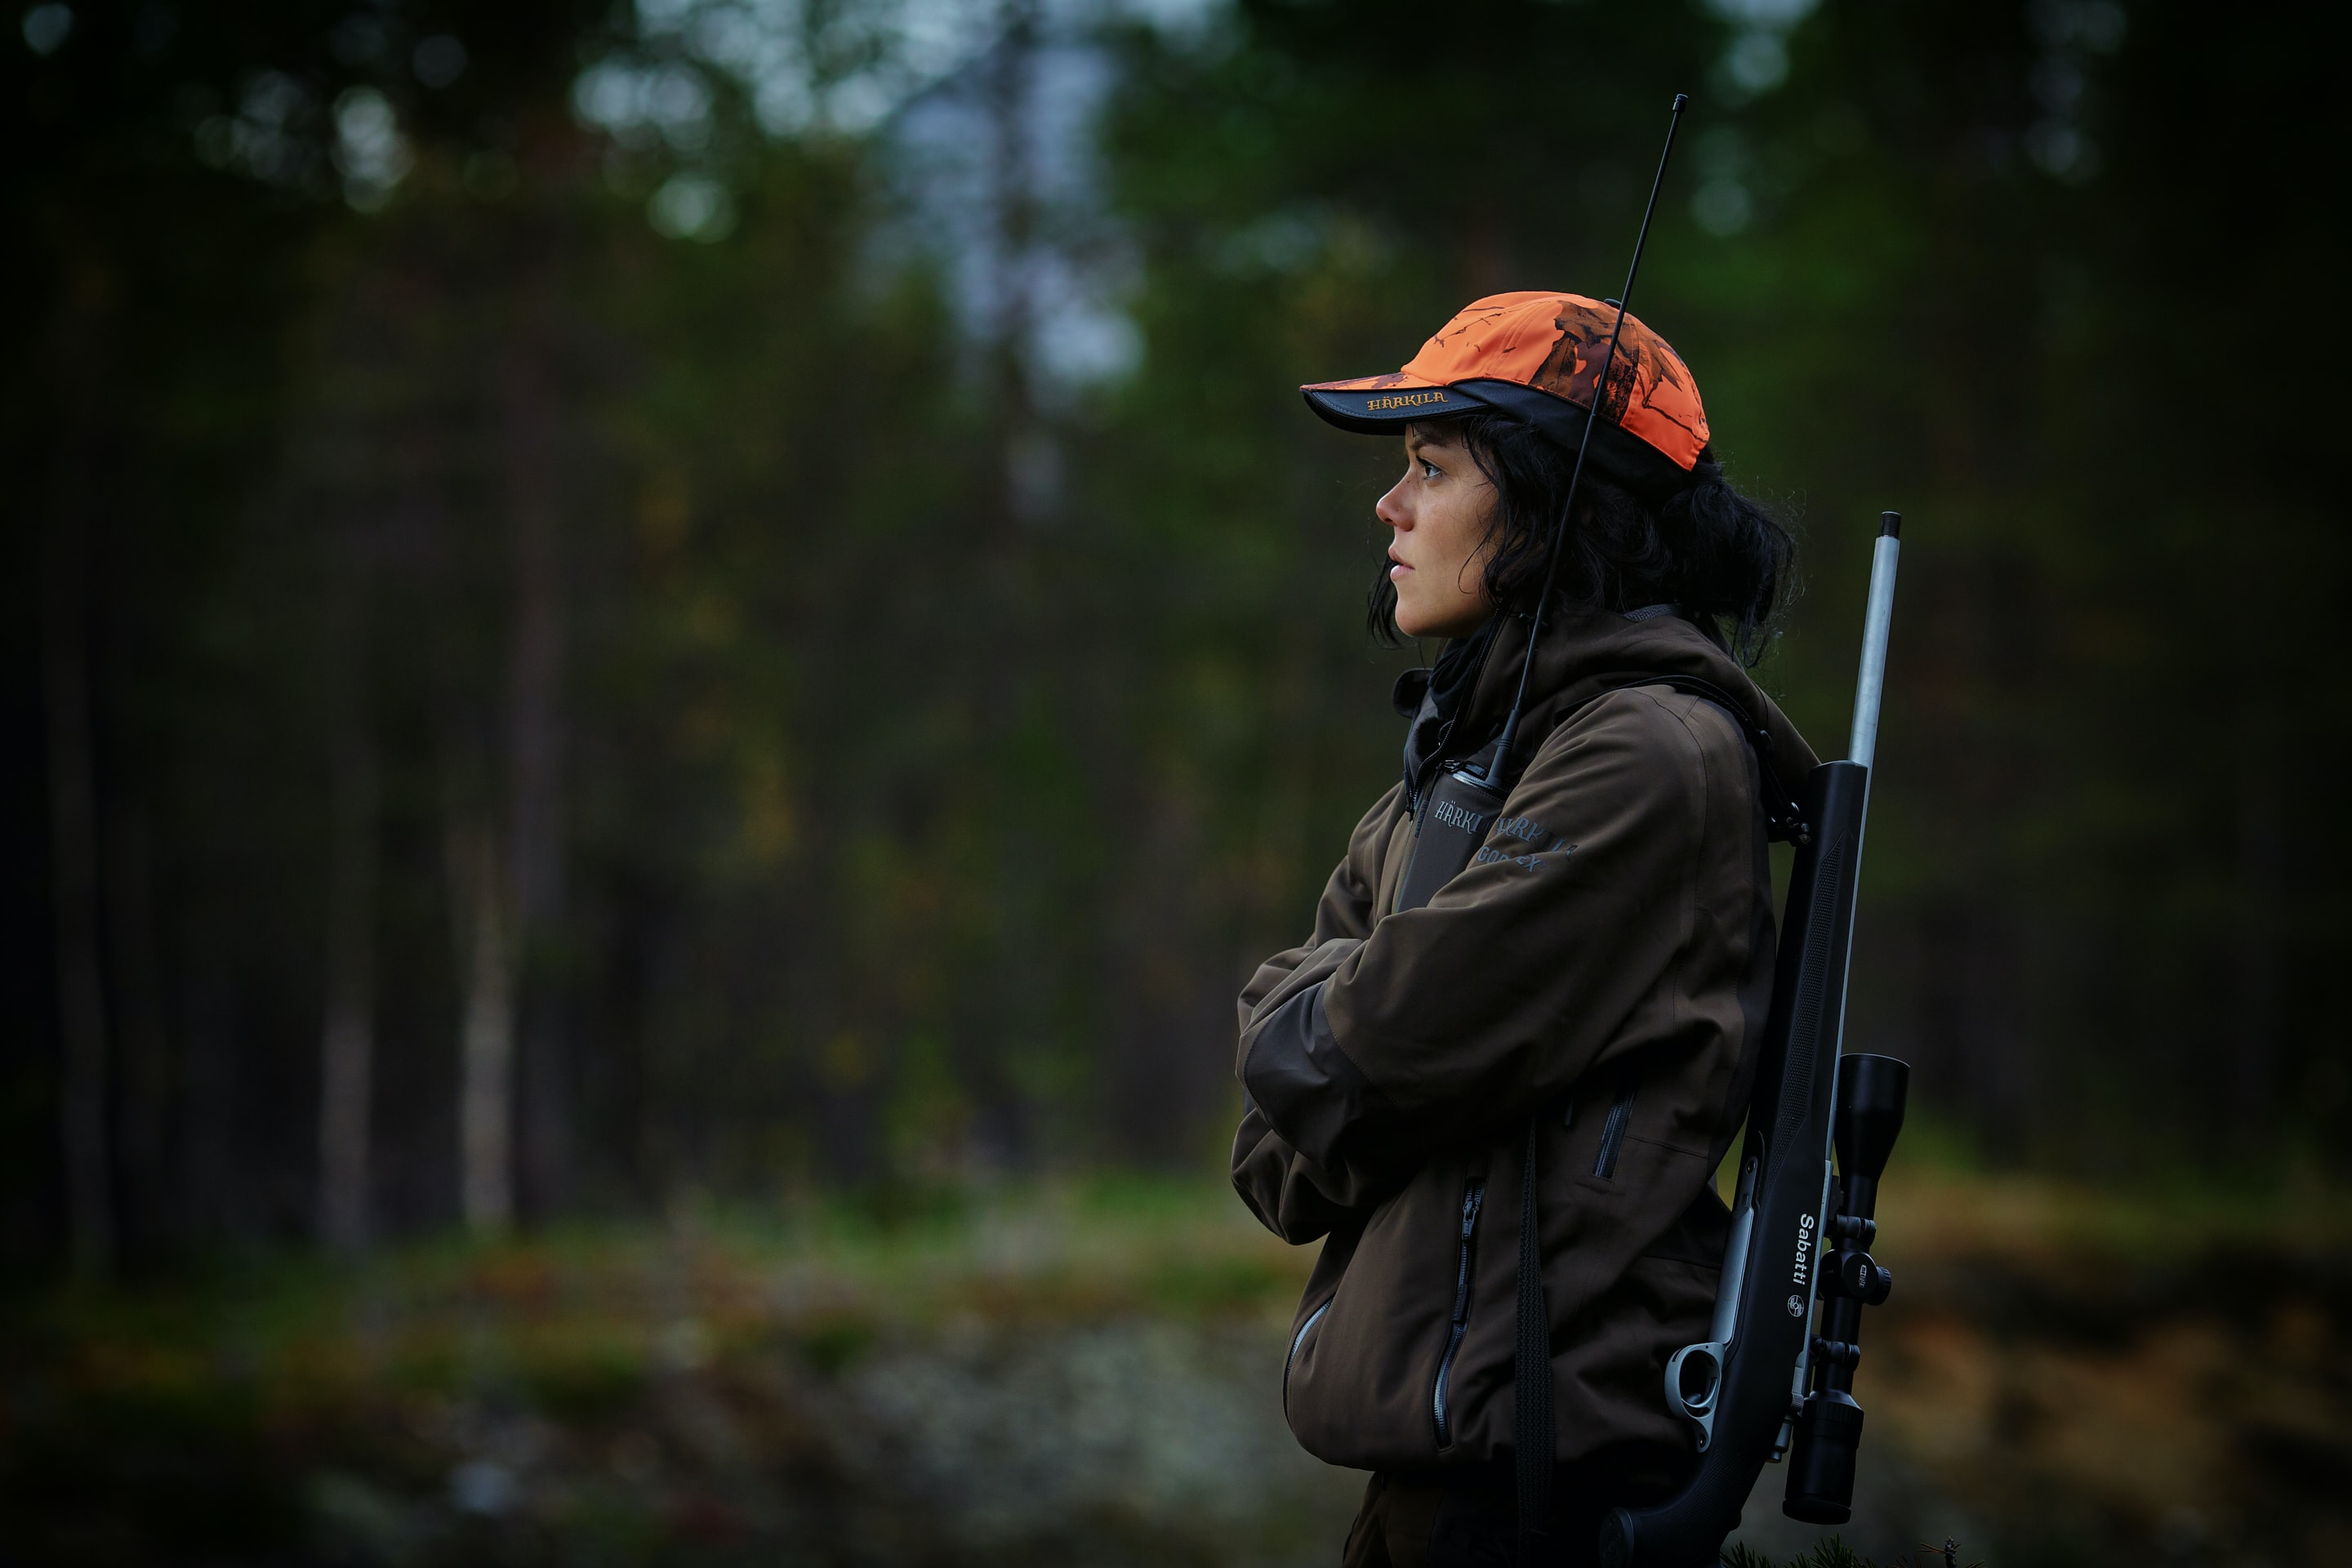 woman carrying hunting rifle in woods